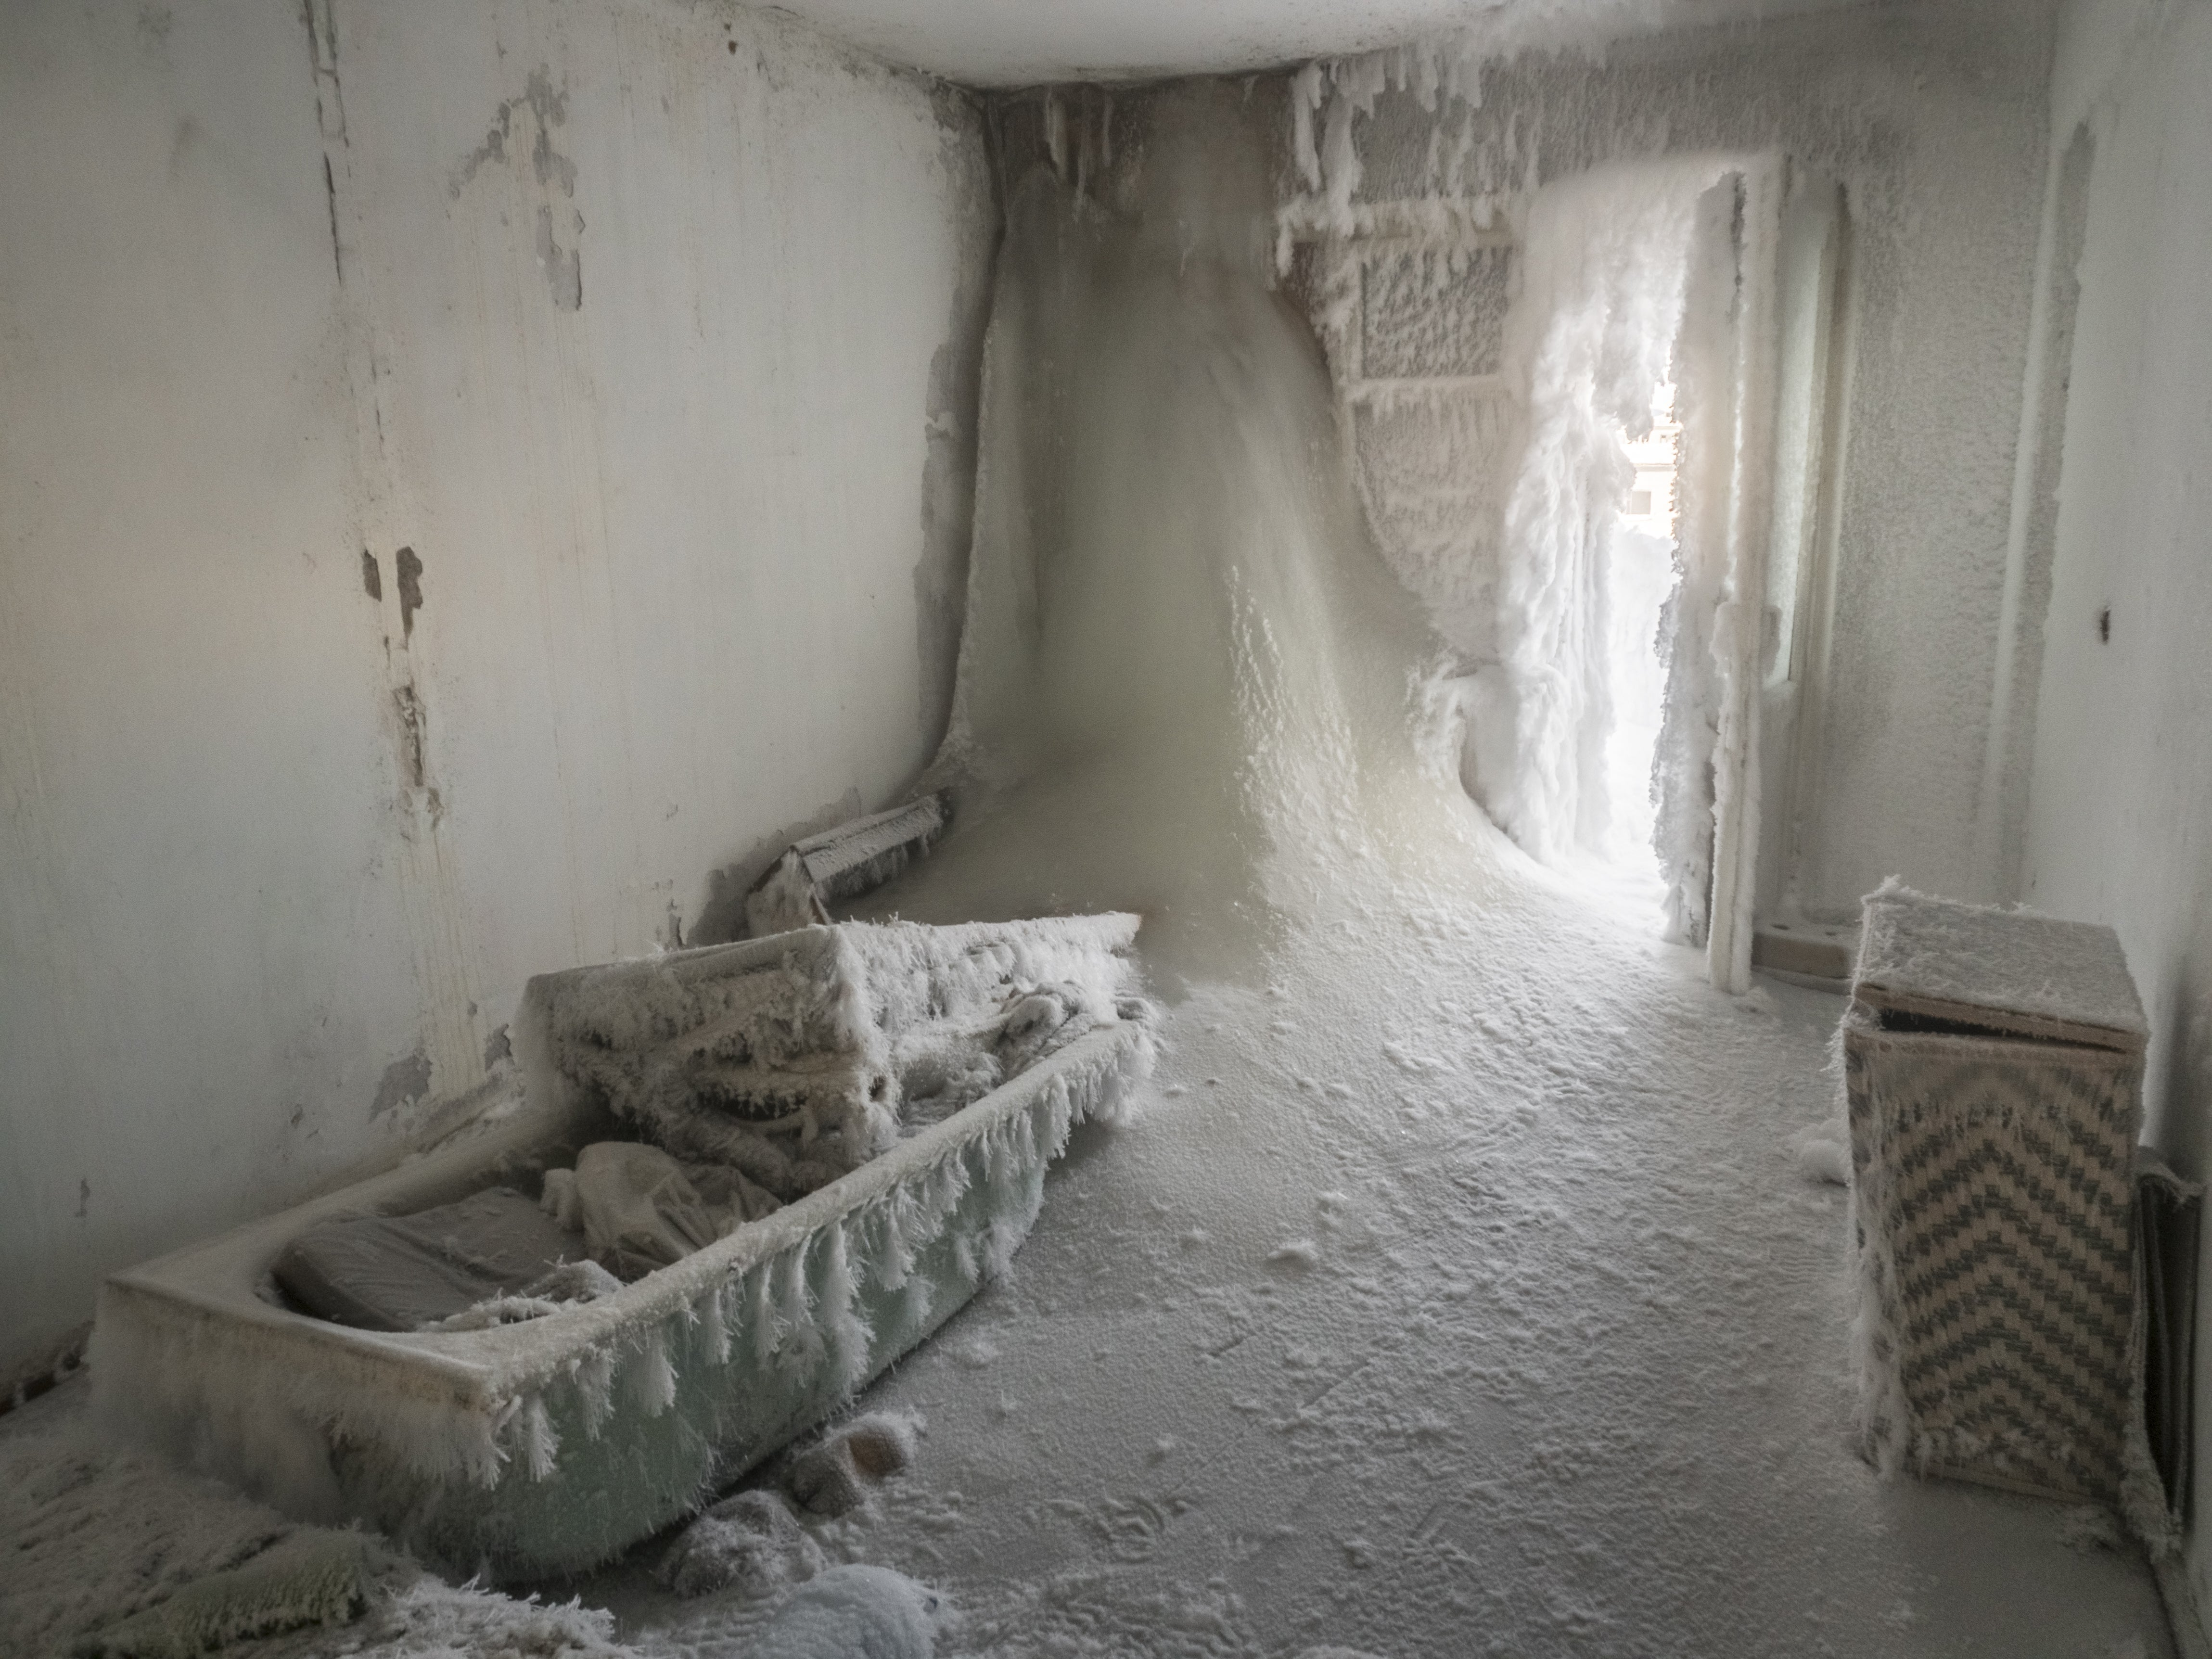 Russian Ghost Town: Eerie Photos Show Frozen Homes and Buildings in Vorkuta—Europe's Coldest City   The Weather Channel - Articles from The Weather Channel   weather.com